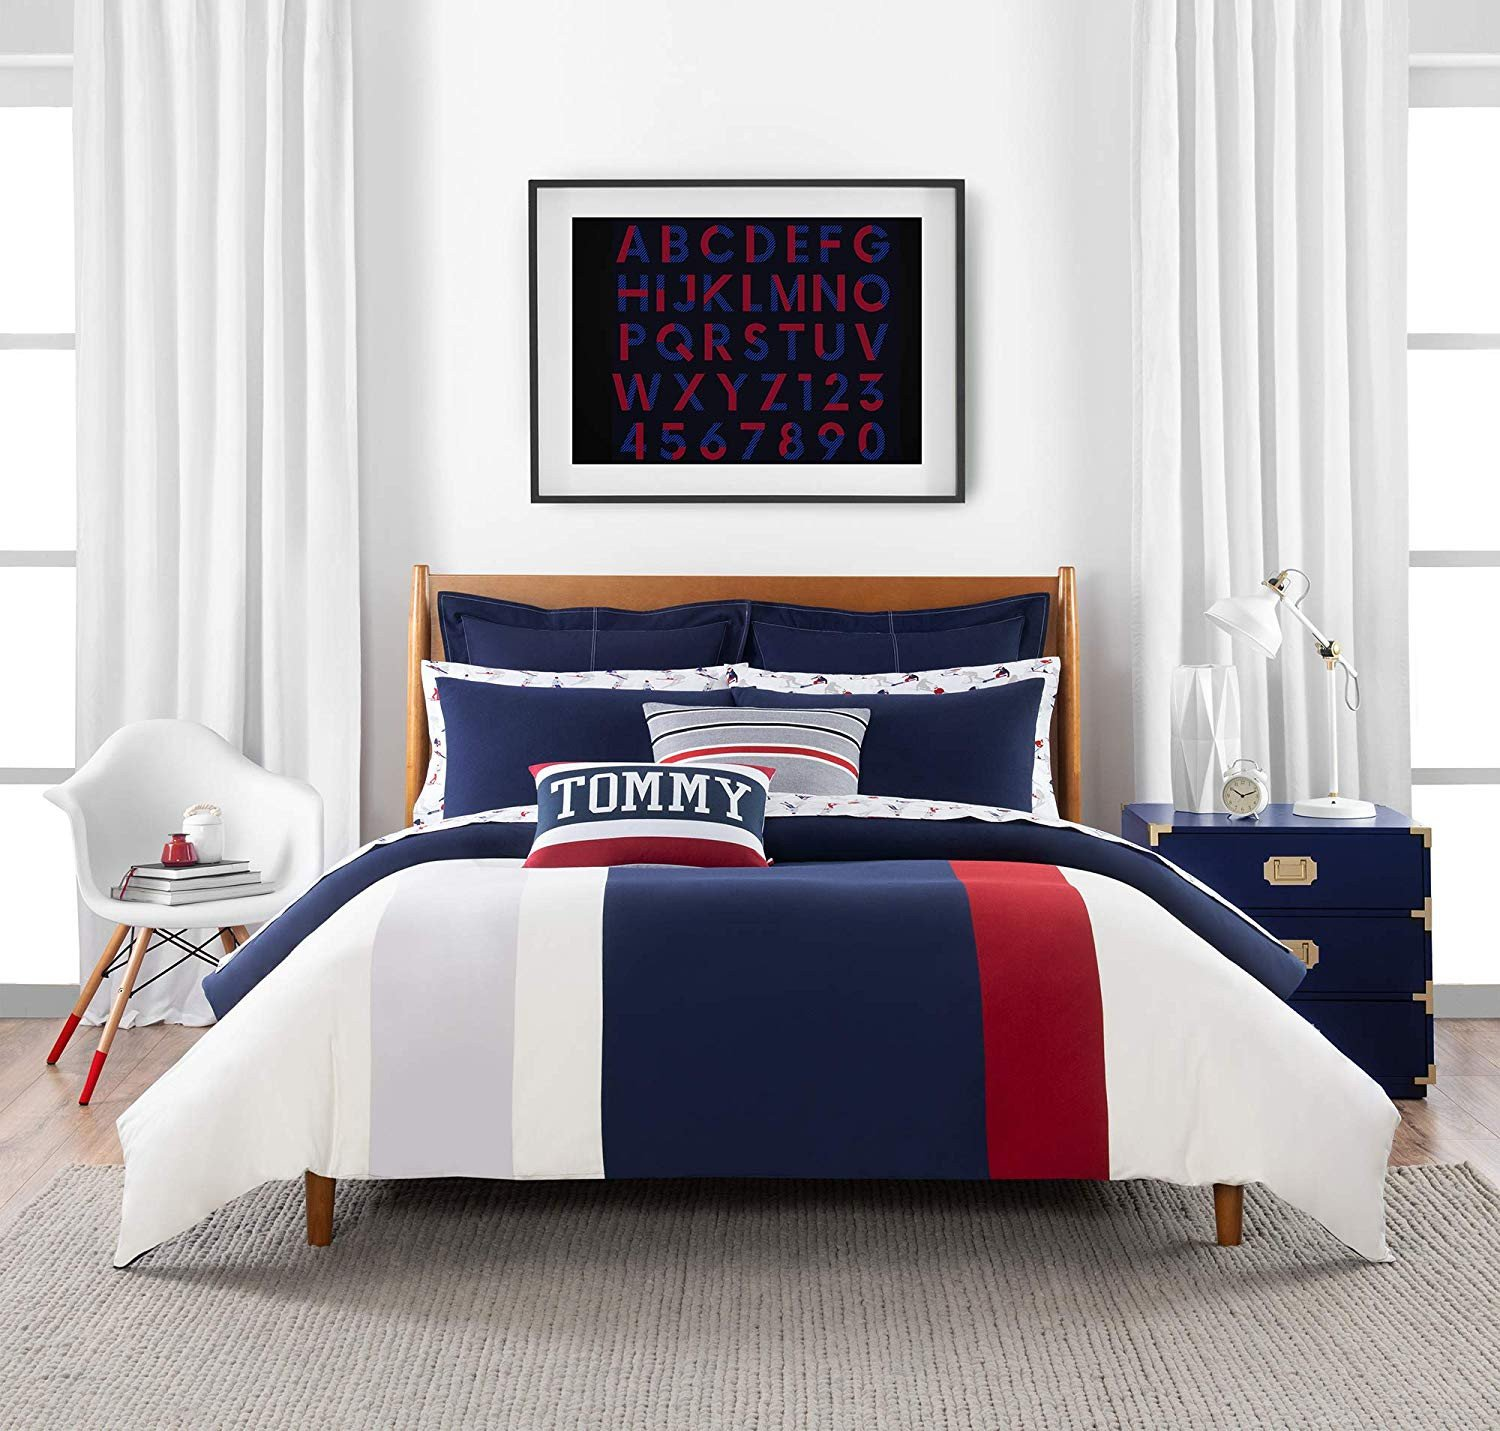 Luggage Rack for Bedroom Fresh Amazon tommy Hilfiger Clash Of 85 Stripe Bedding